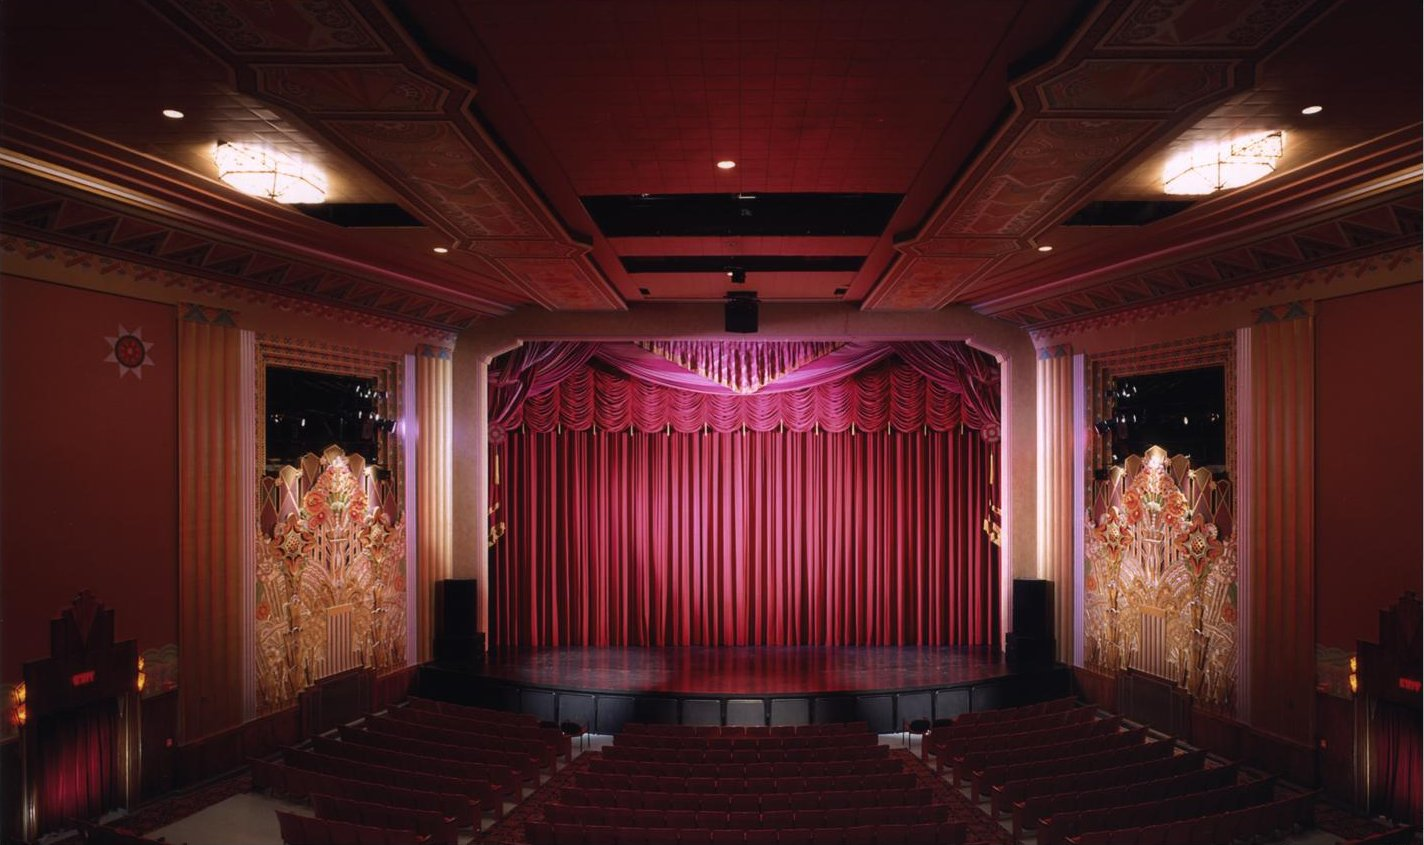 Jerry39s brokendown palaces flynn theater 153 main street for Art deco cinema interior